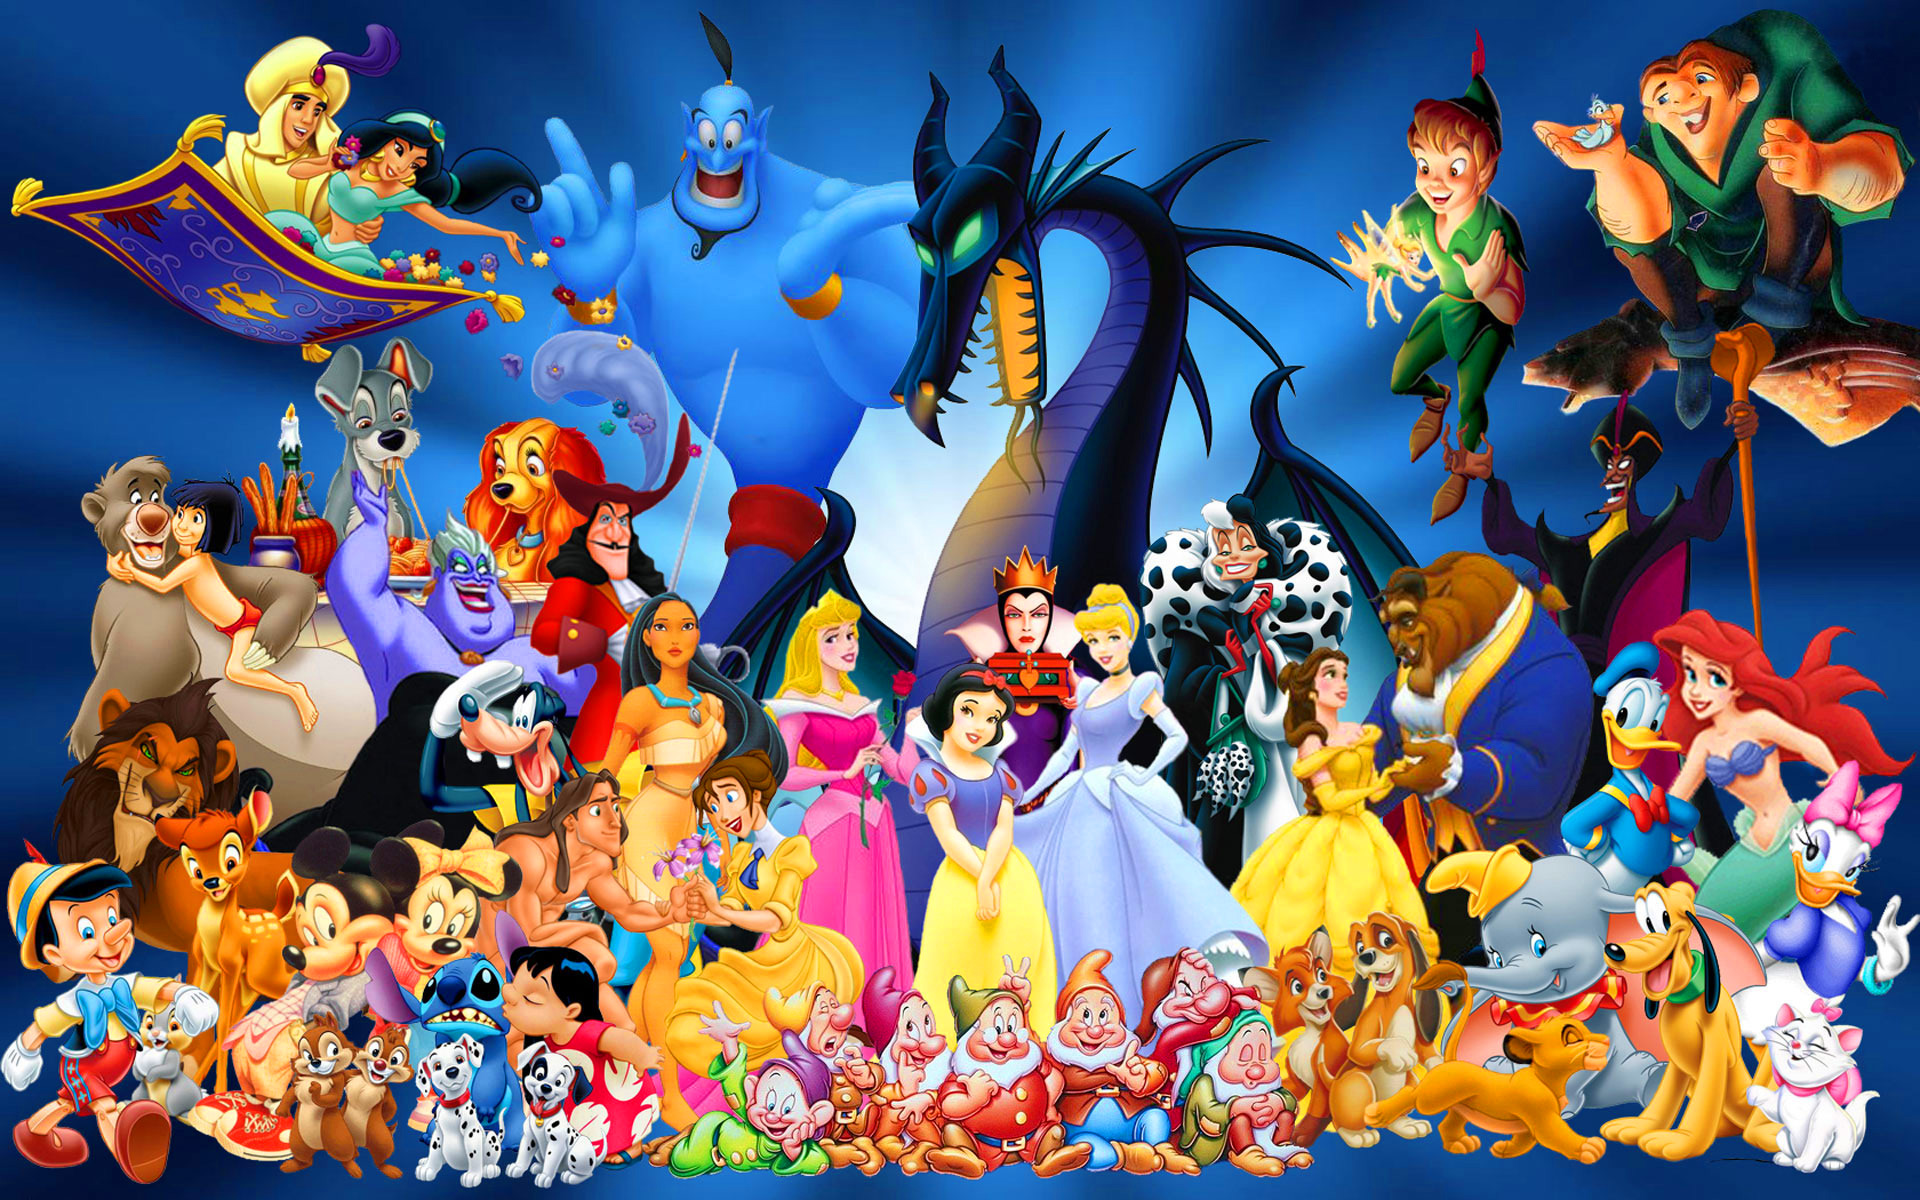 Wallpaper Disney Cartoon 1920x1200